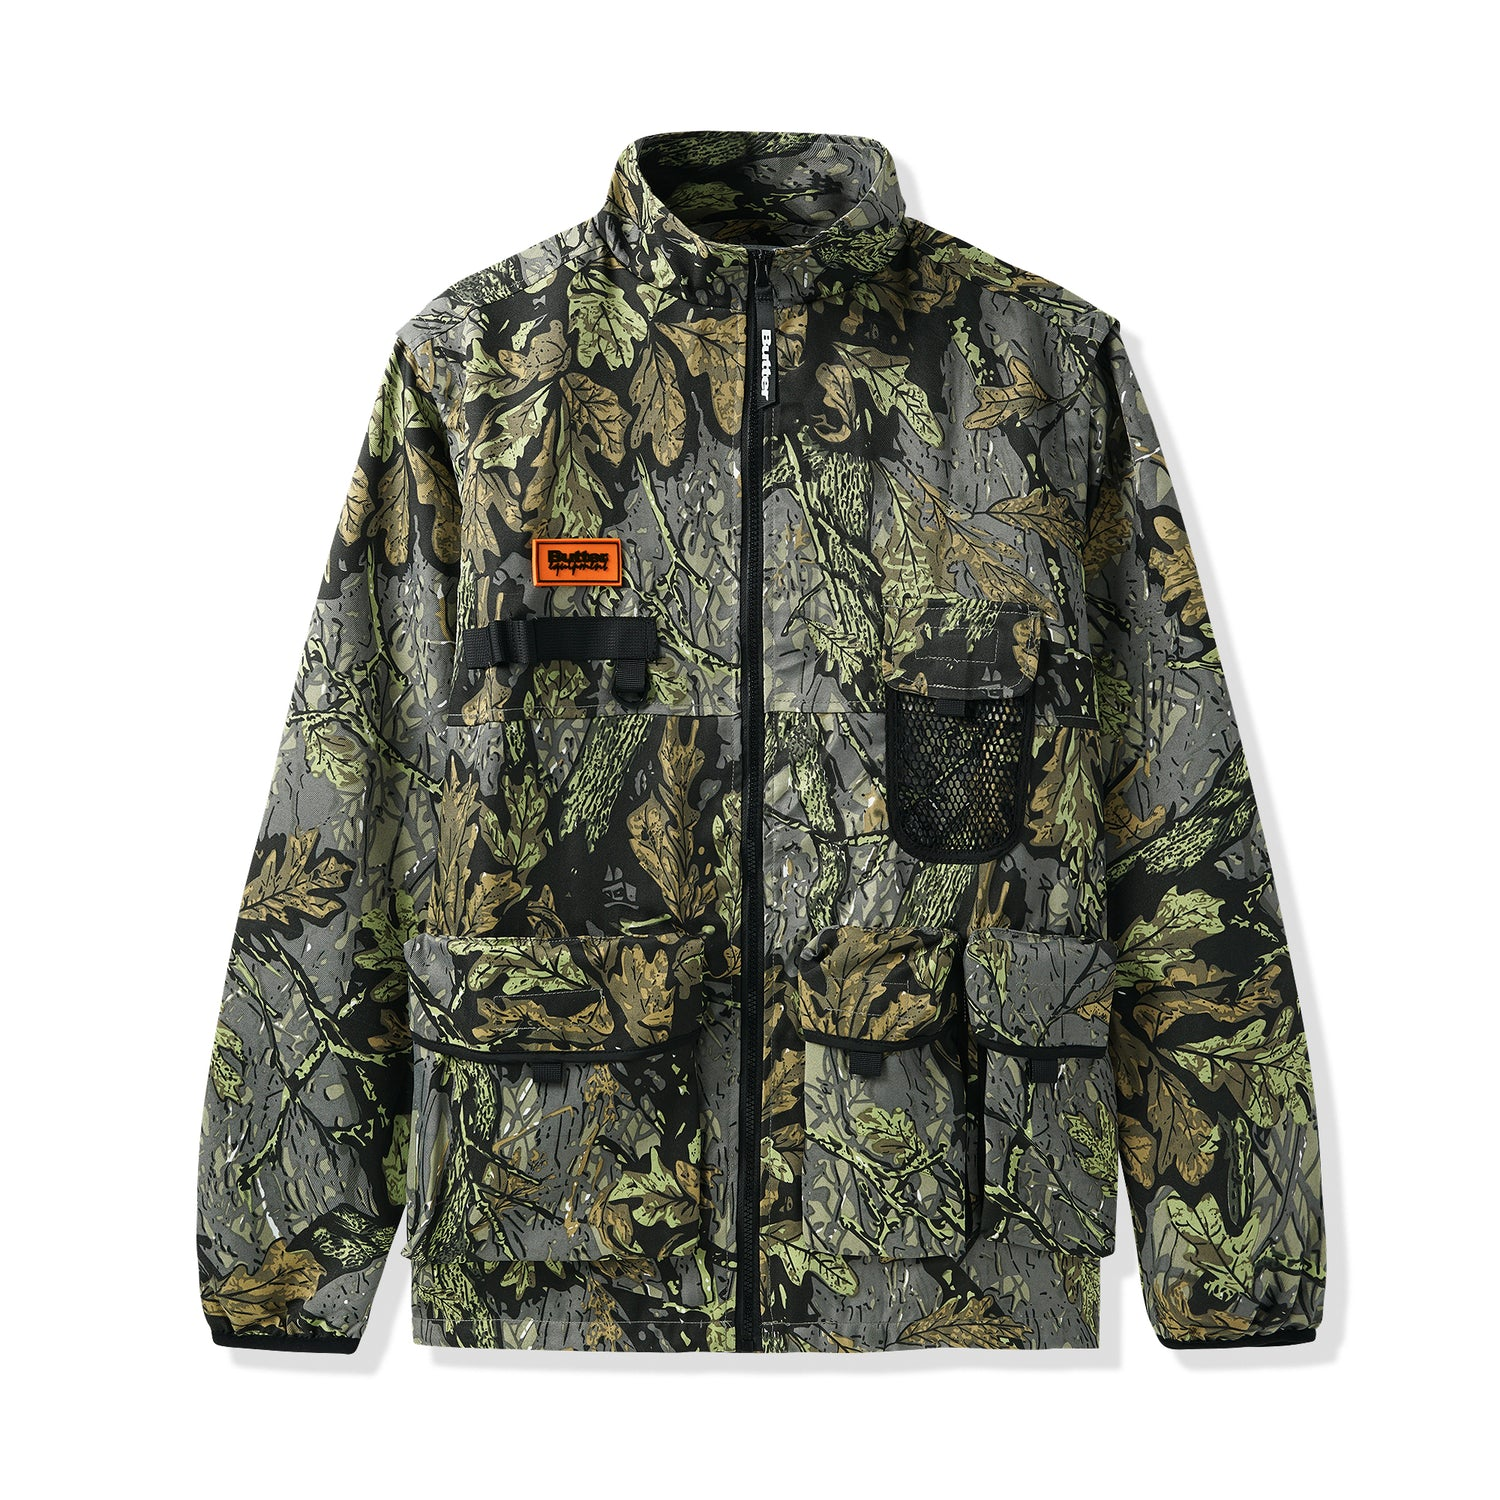 Equipment Technical Jacket, Leaf Camo